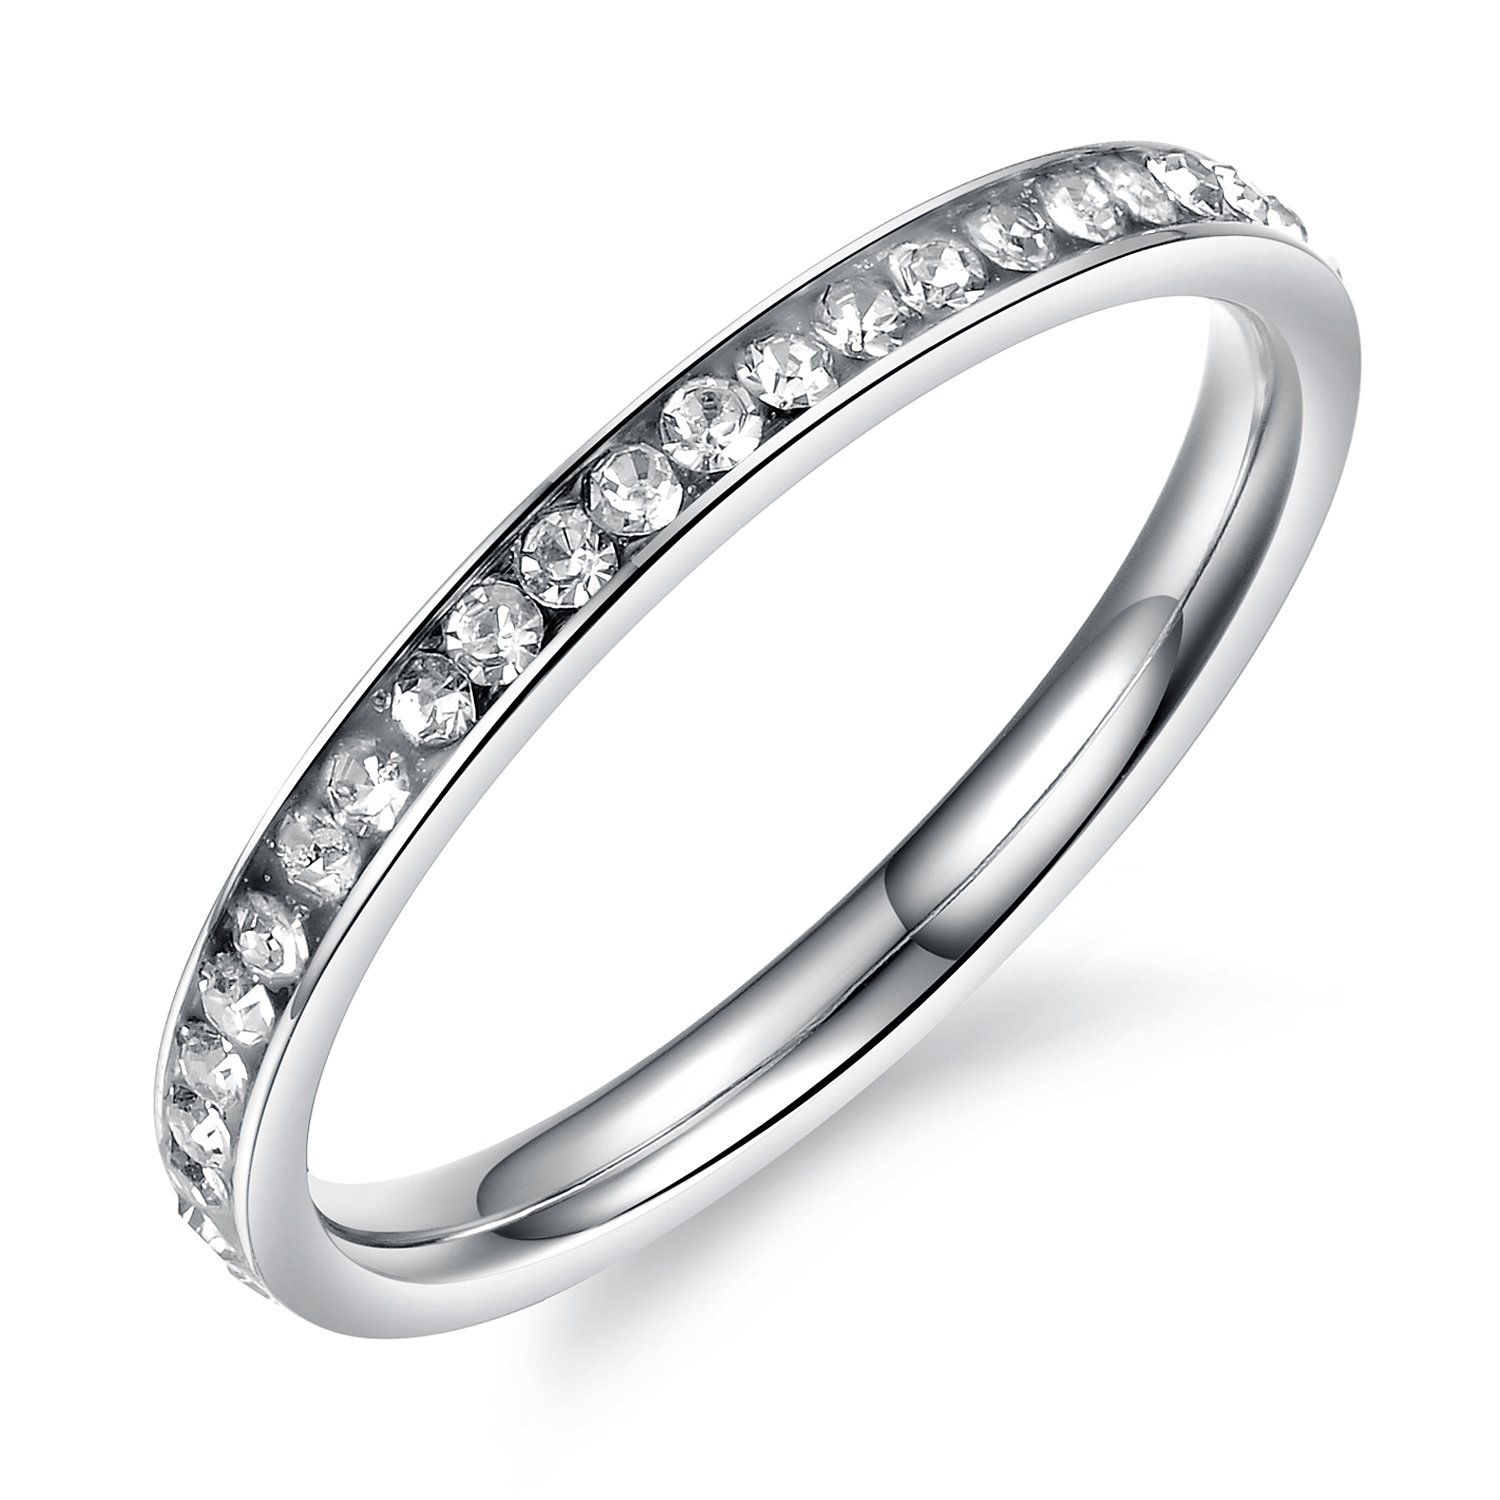 Mintik Womens CZ Eternity Ring Engagement Wedding Band Anniversary Engagement Promise Tail Ring Size 4 to 8 Mintik Jewelry M-R-031